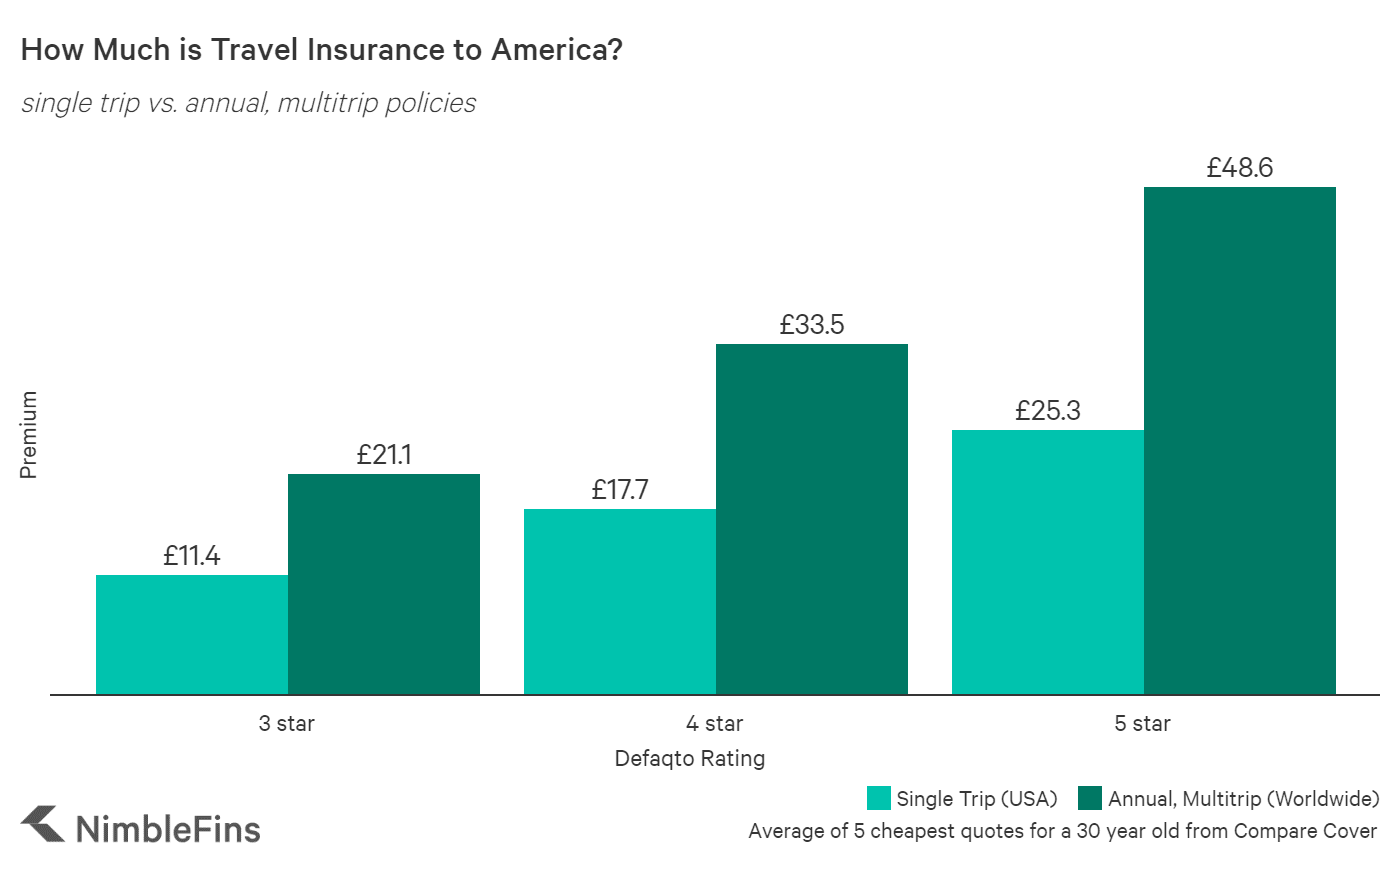 Chart Showing that Travel Insurance for a 30-year-old individual